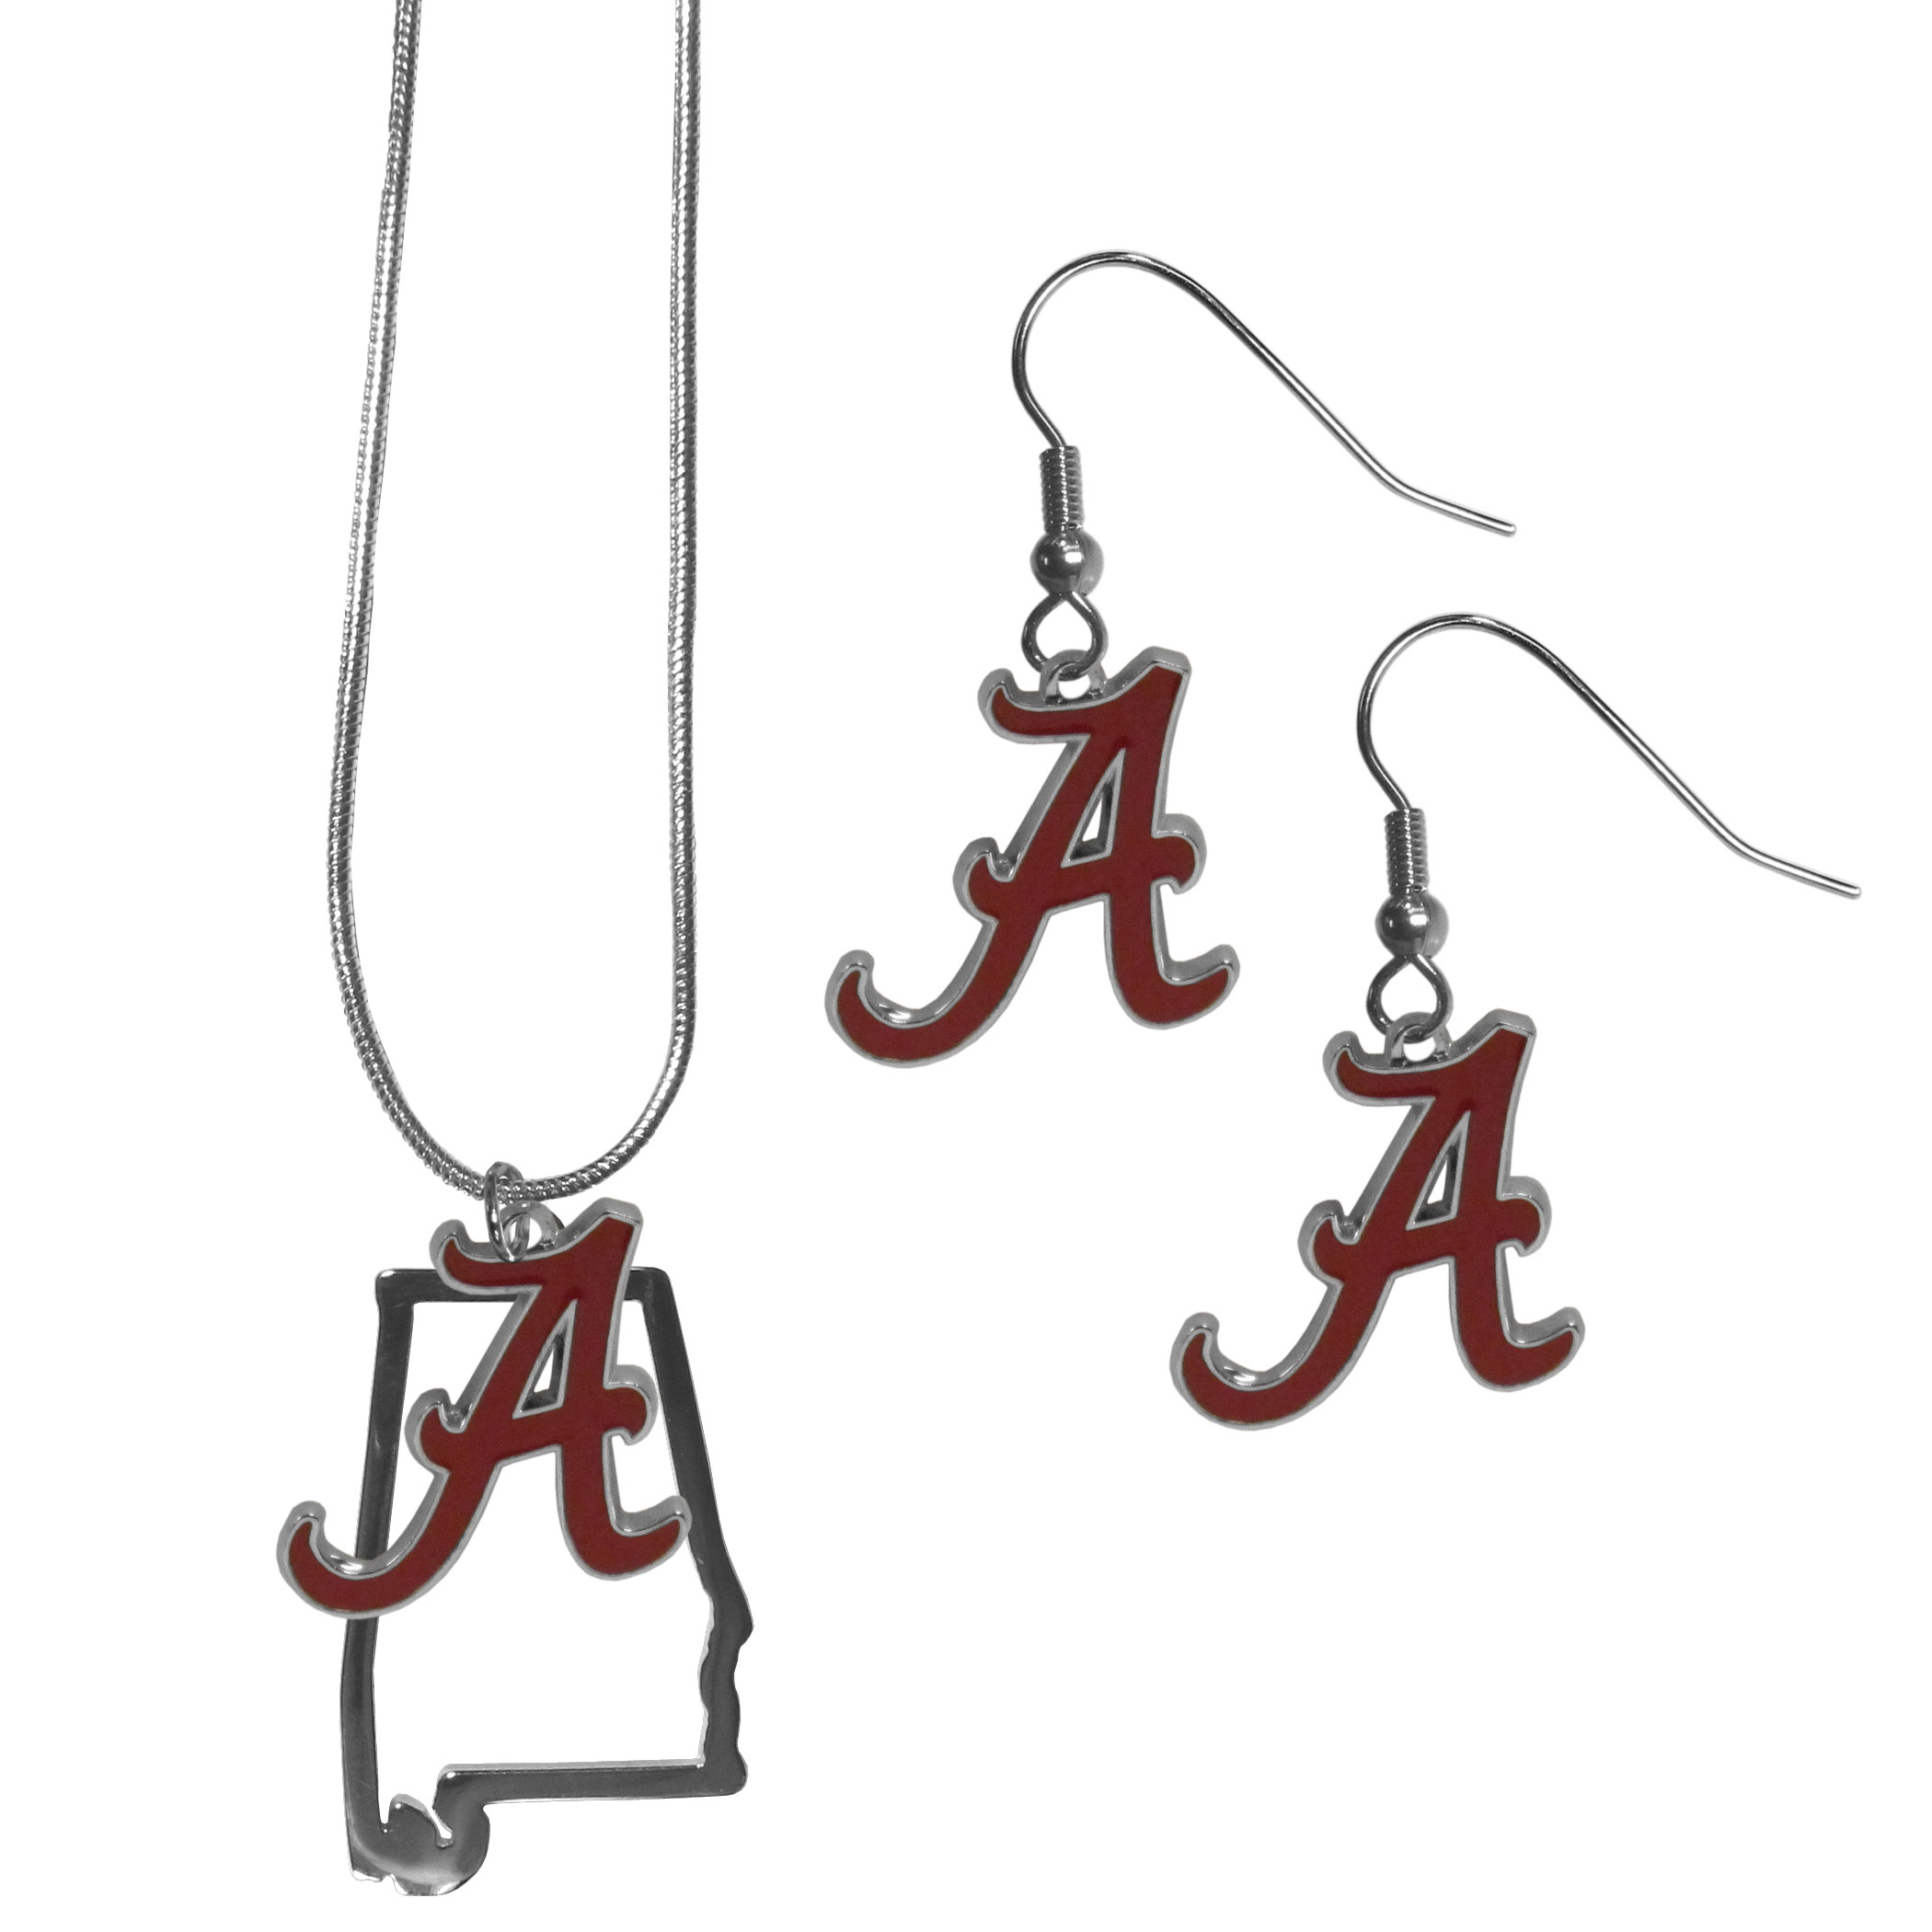 Alabama Crimson Tide Dangle Earrings and State Necklace Set - Get in on the trend! State themes are a trend that just keeps getting more popular and this jewelry set takes the state style and give it a sporty twist with a Alabama Crimson Tide necklace that features an Arizona state outline charm paired with a beautiful team charm and matching team charm dangle earrings. The earrings feature hypoallergenic fishhook posts that are nickel free.